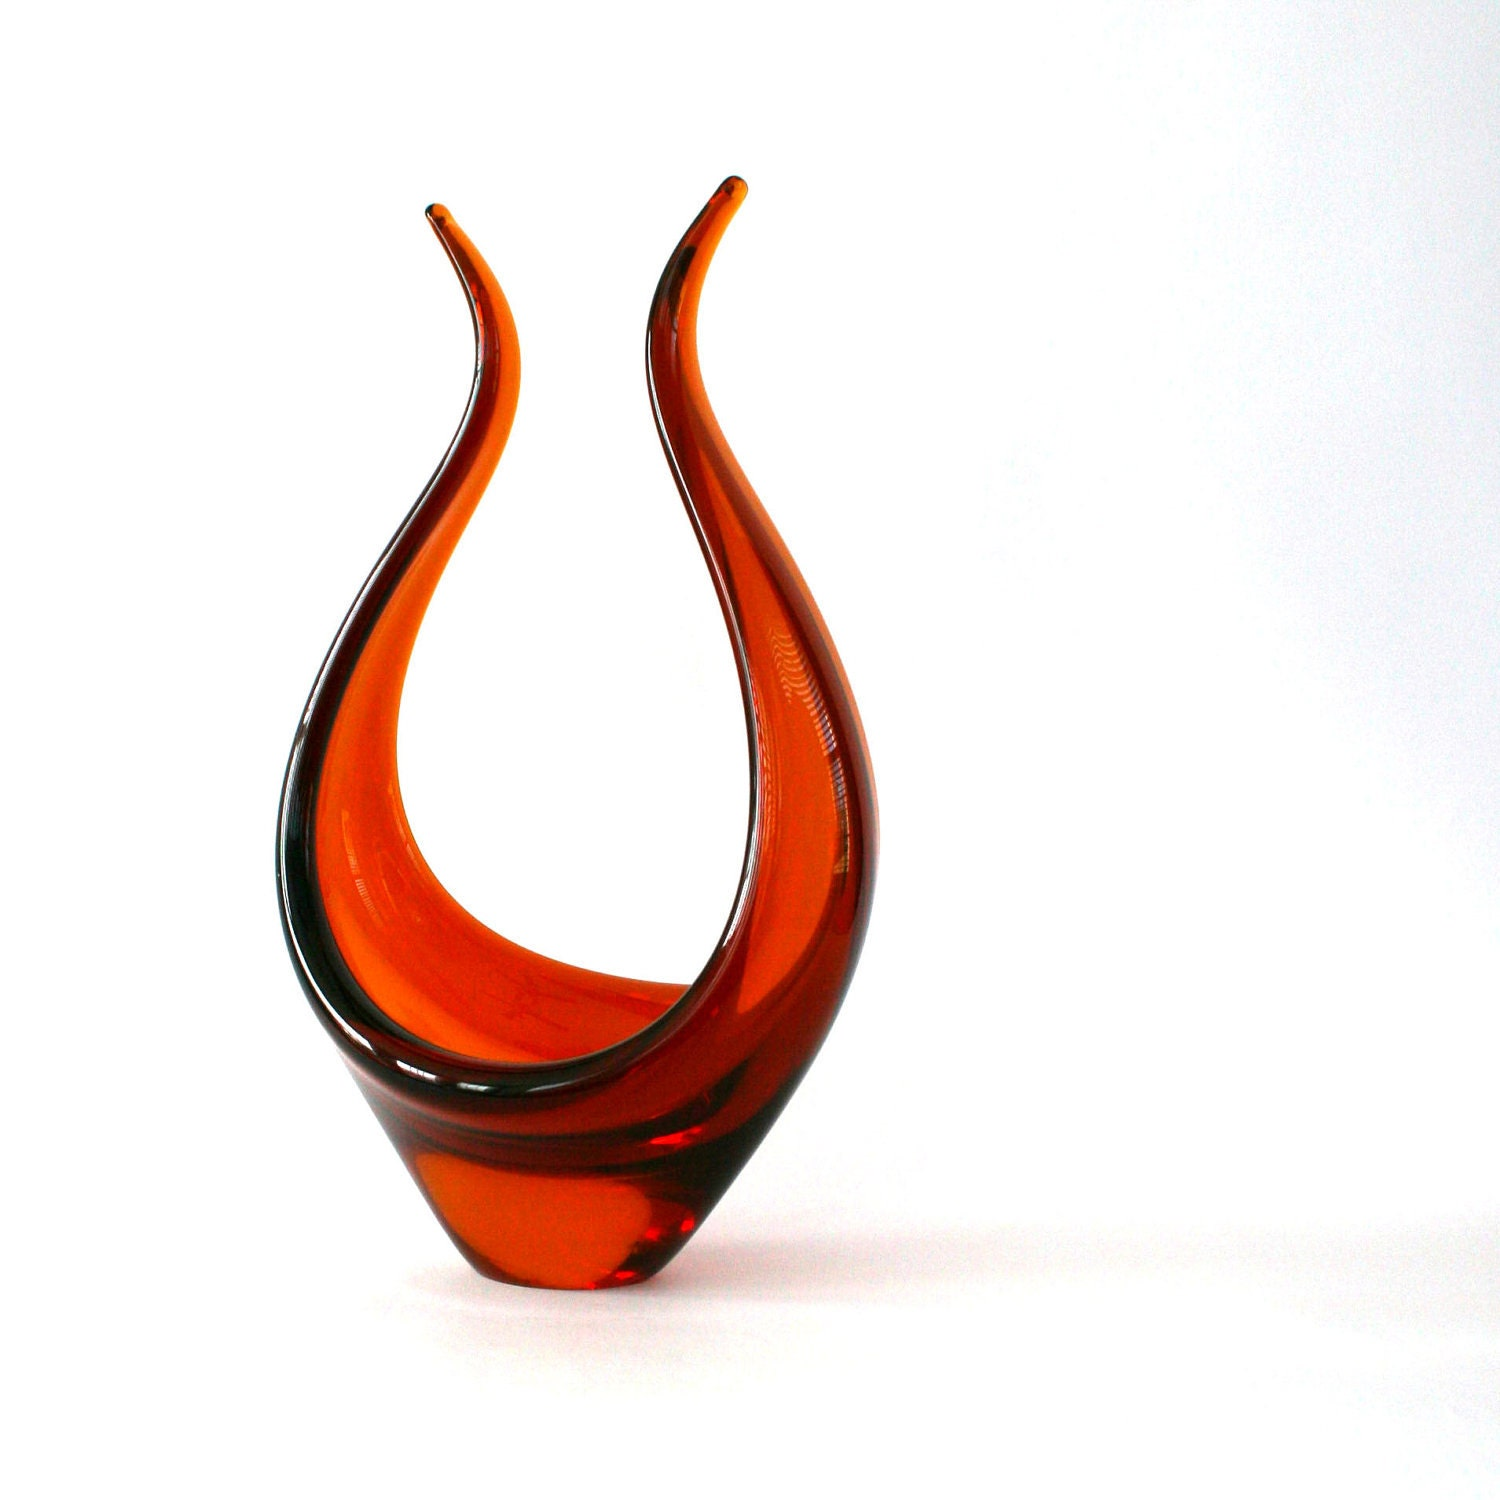 Tangerine Art Glass Bowl Figurine Fire Orange Glass Sculpture